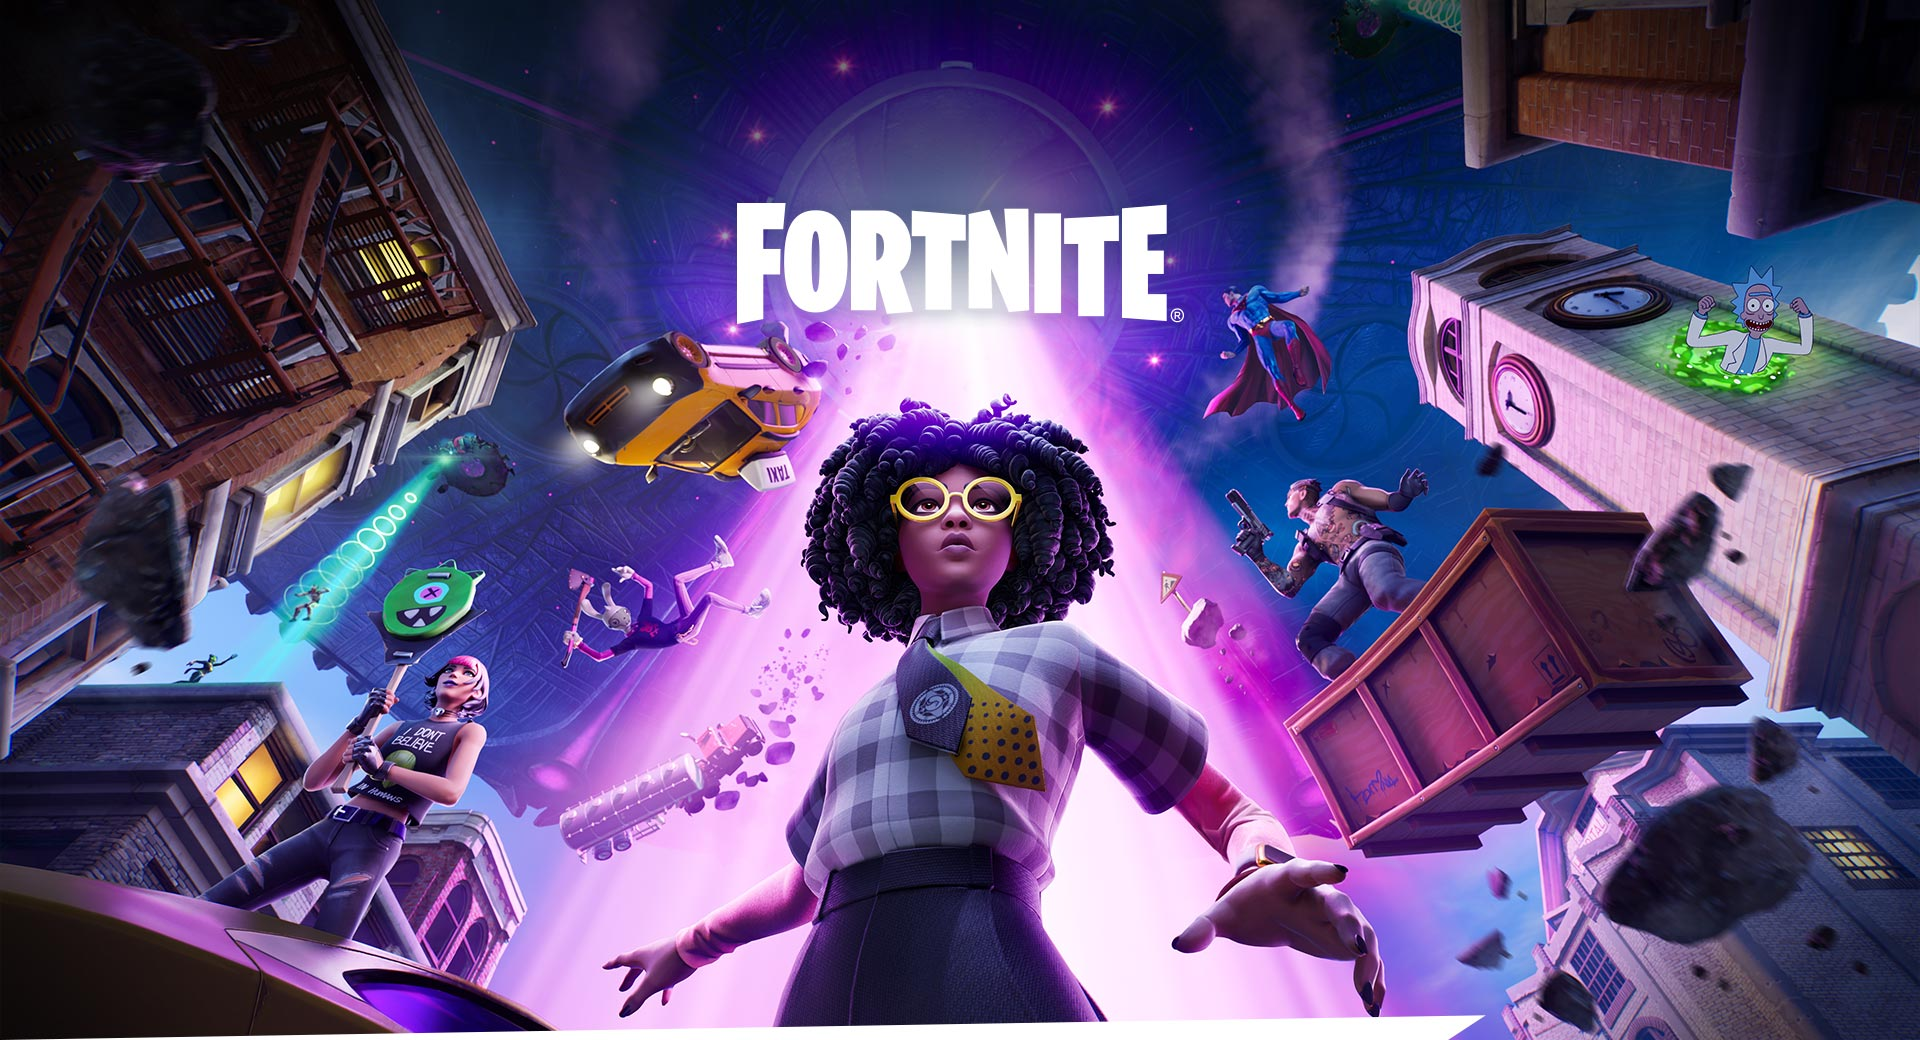 Fortnite, A young girl in yellow glasses braces herself as a bright tractor beam lifts characters into the air behind her.